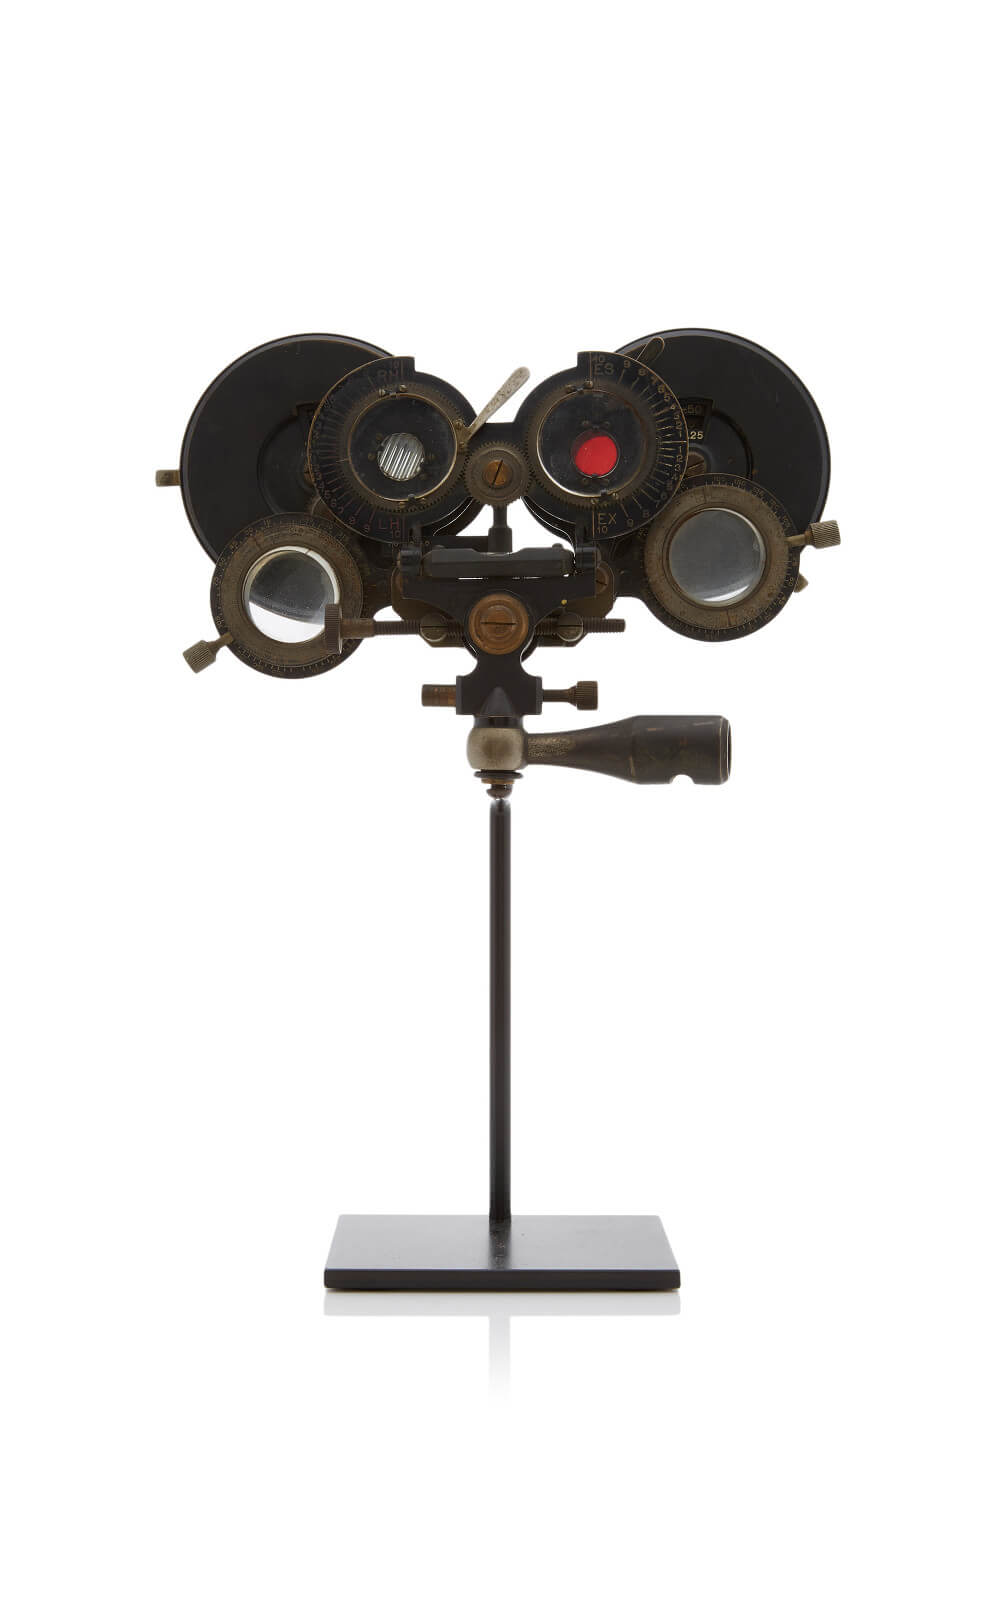 Early 20th century Ophthalmology tool